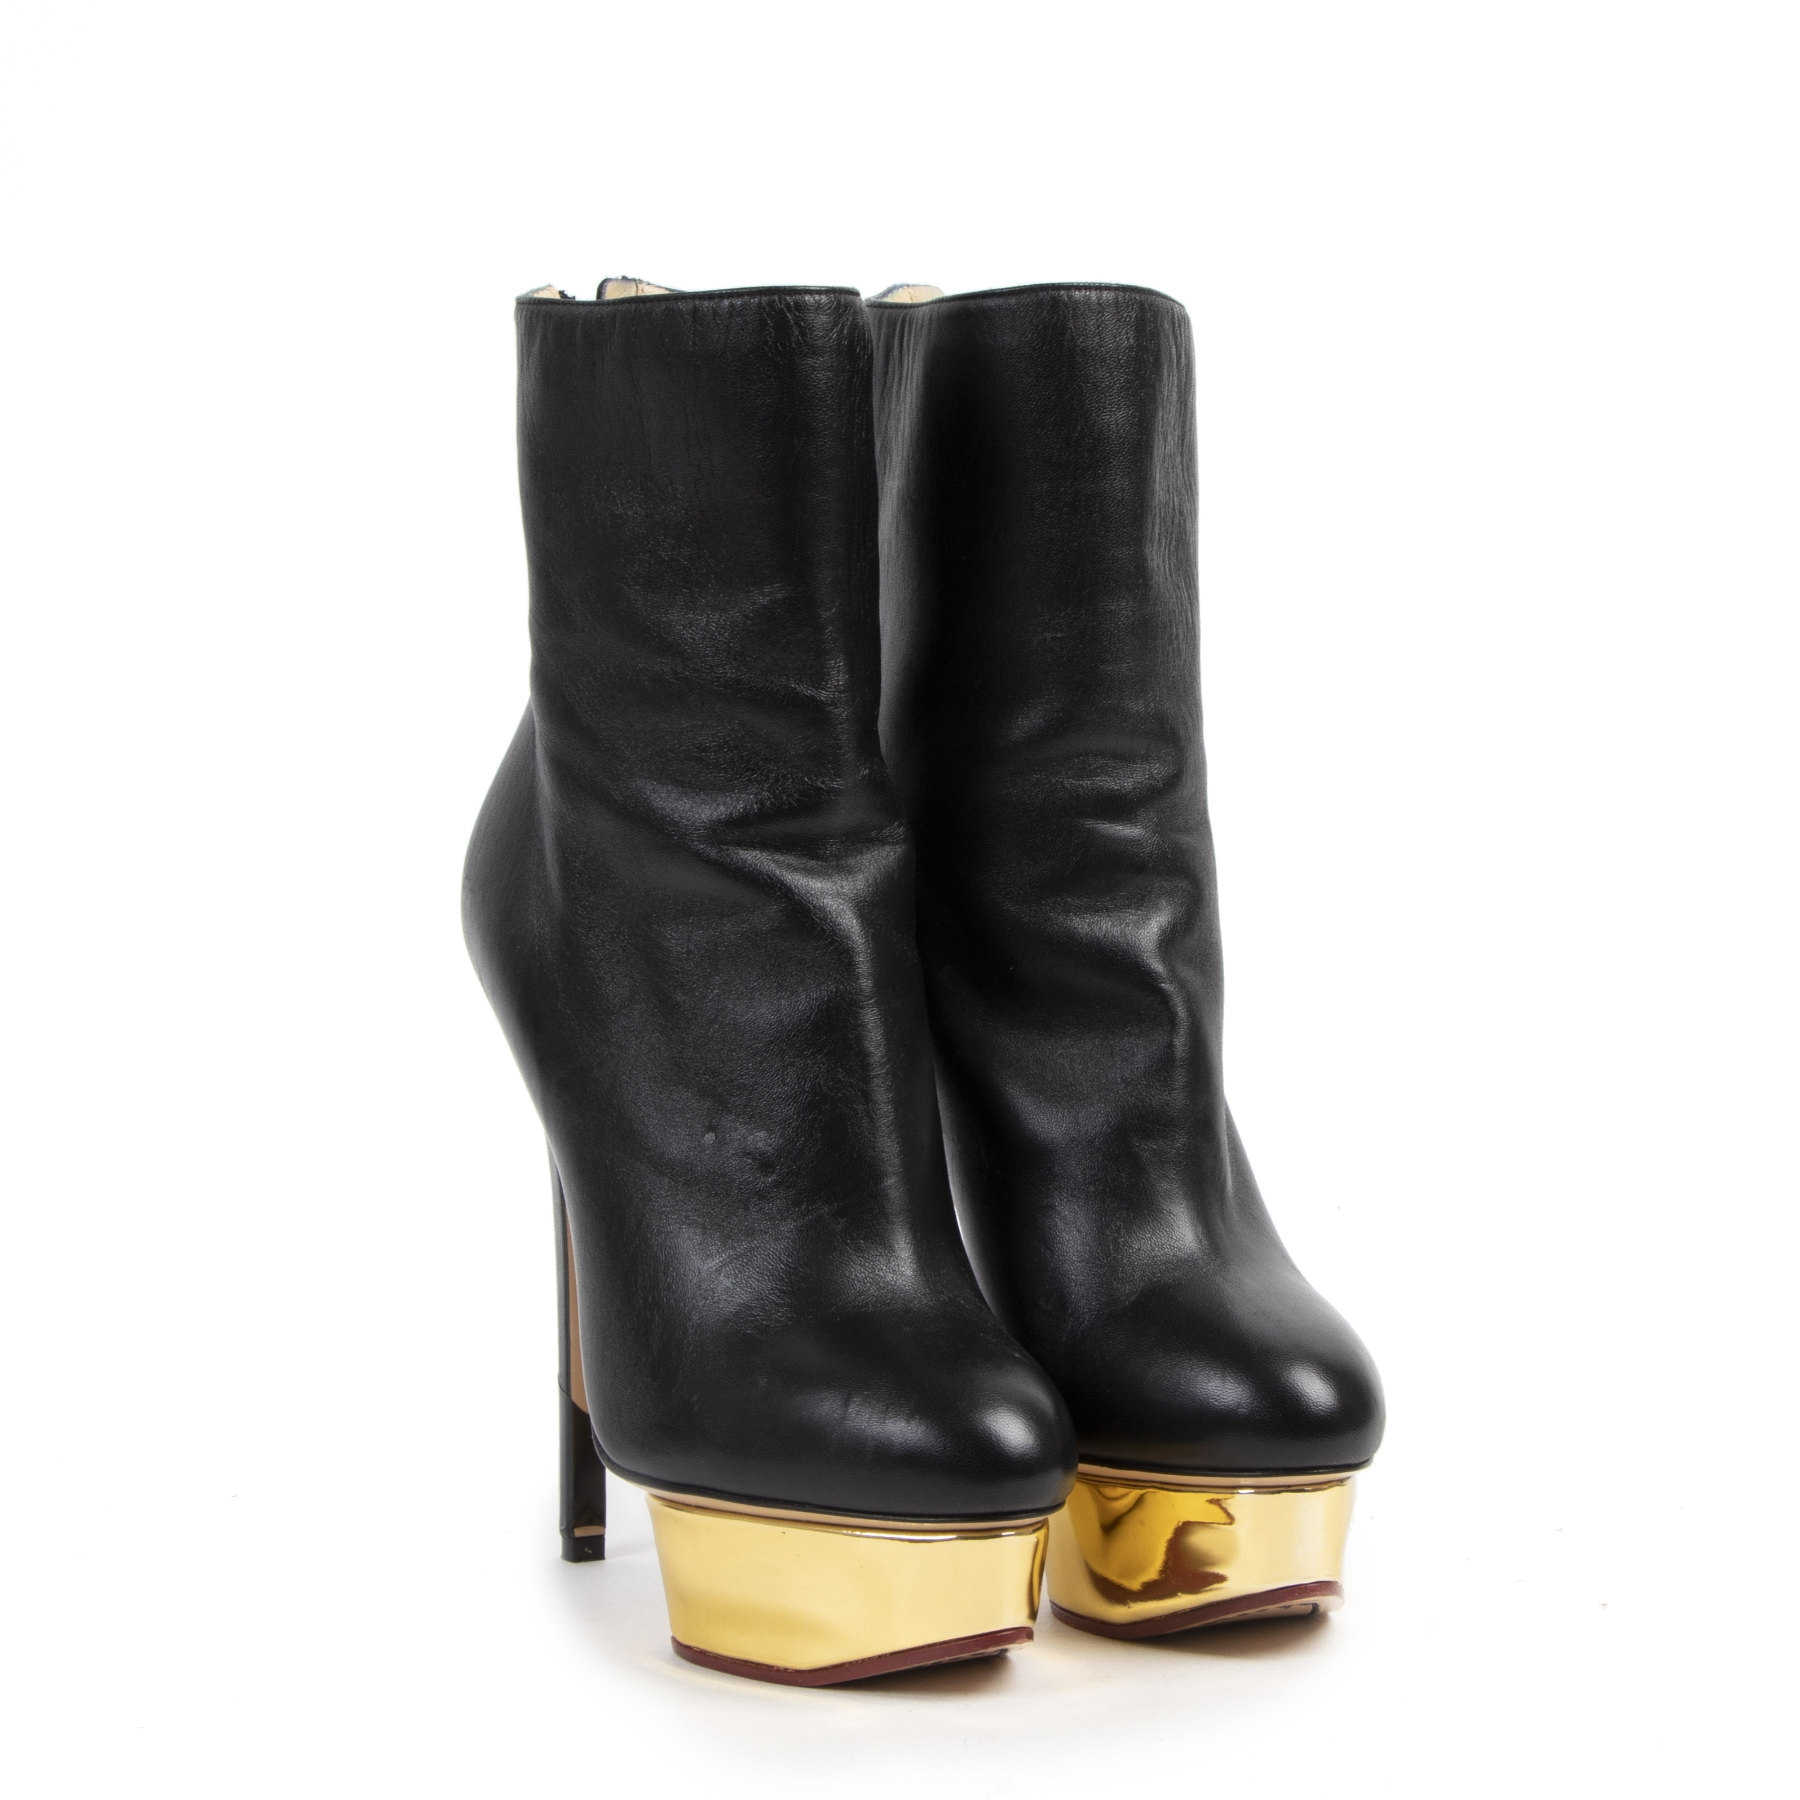 Authentique seconde-main vintage Sophia Webster Black Leather Platform Ankle Boots - Size 37 achète en ligne webshop LabelLOV